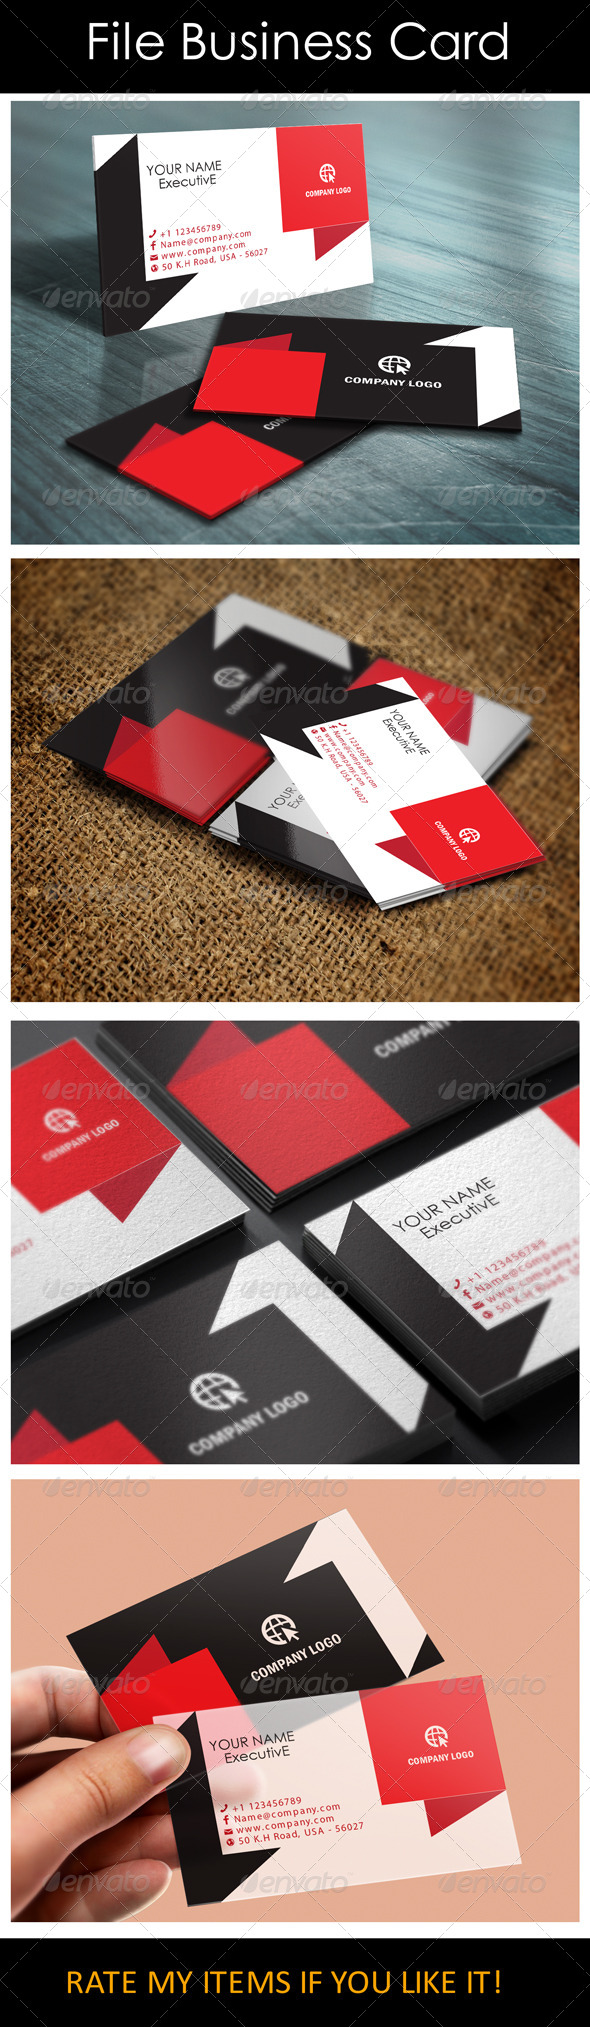 Divorce Letter Template Free%0A Corporate File Business Card